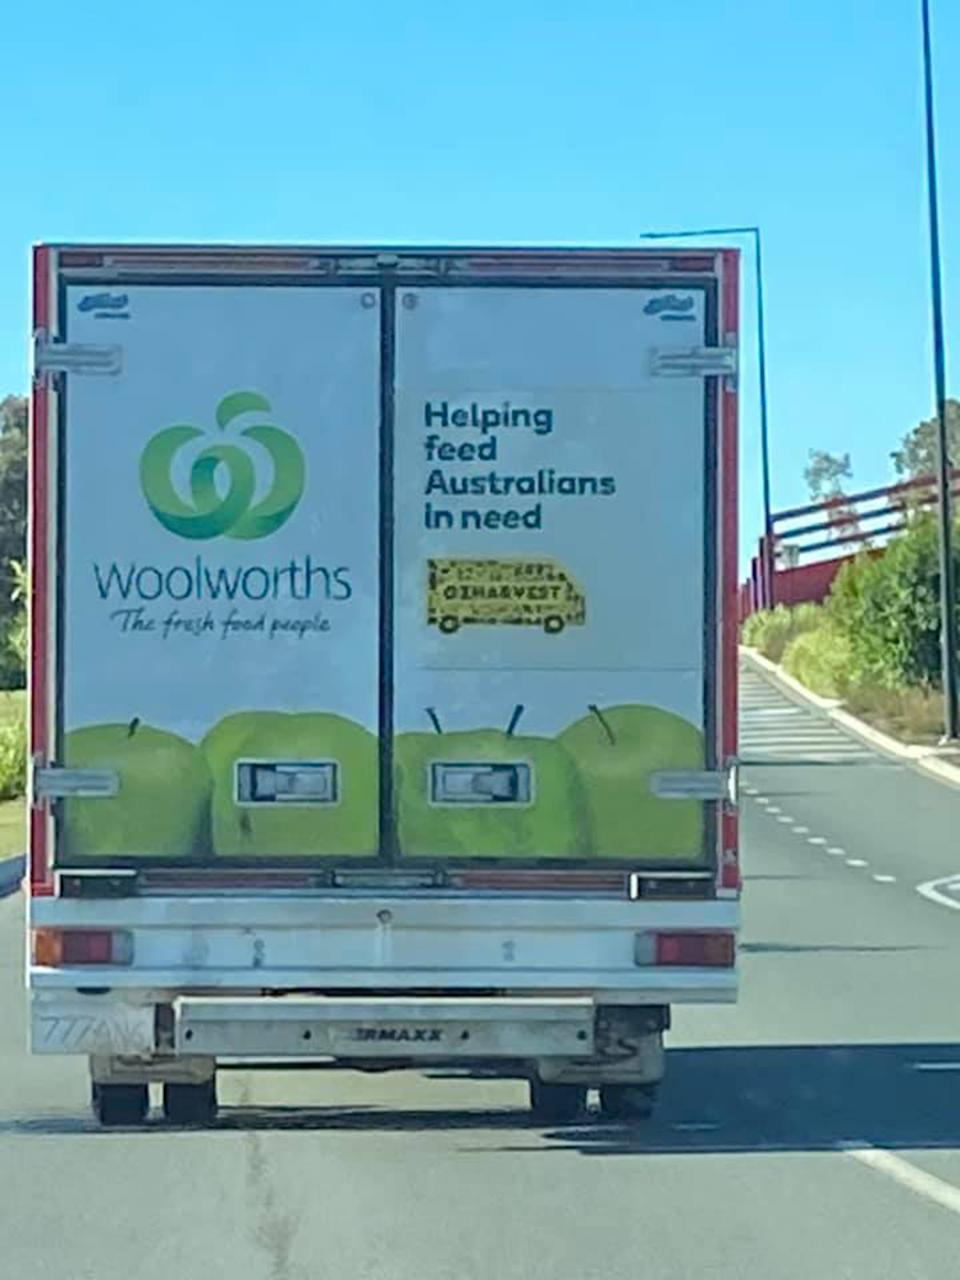 Woolworths delivery truck with no registration plate.